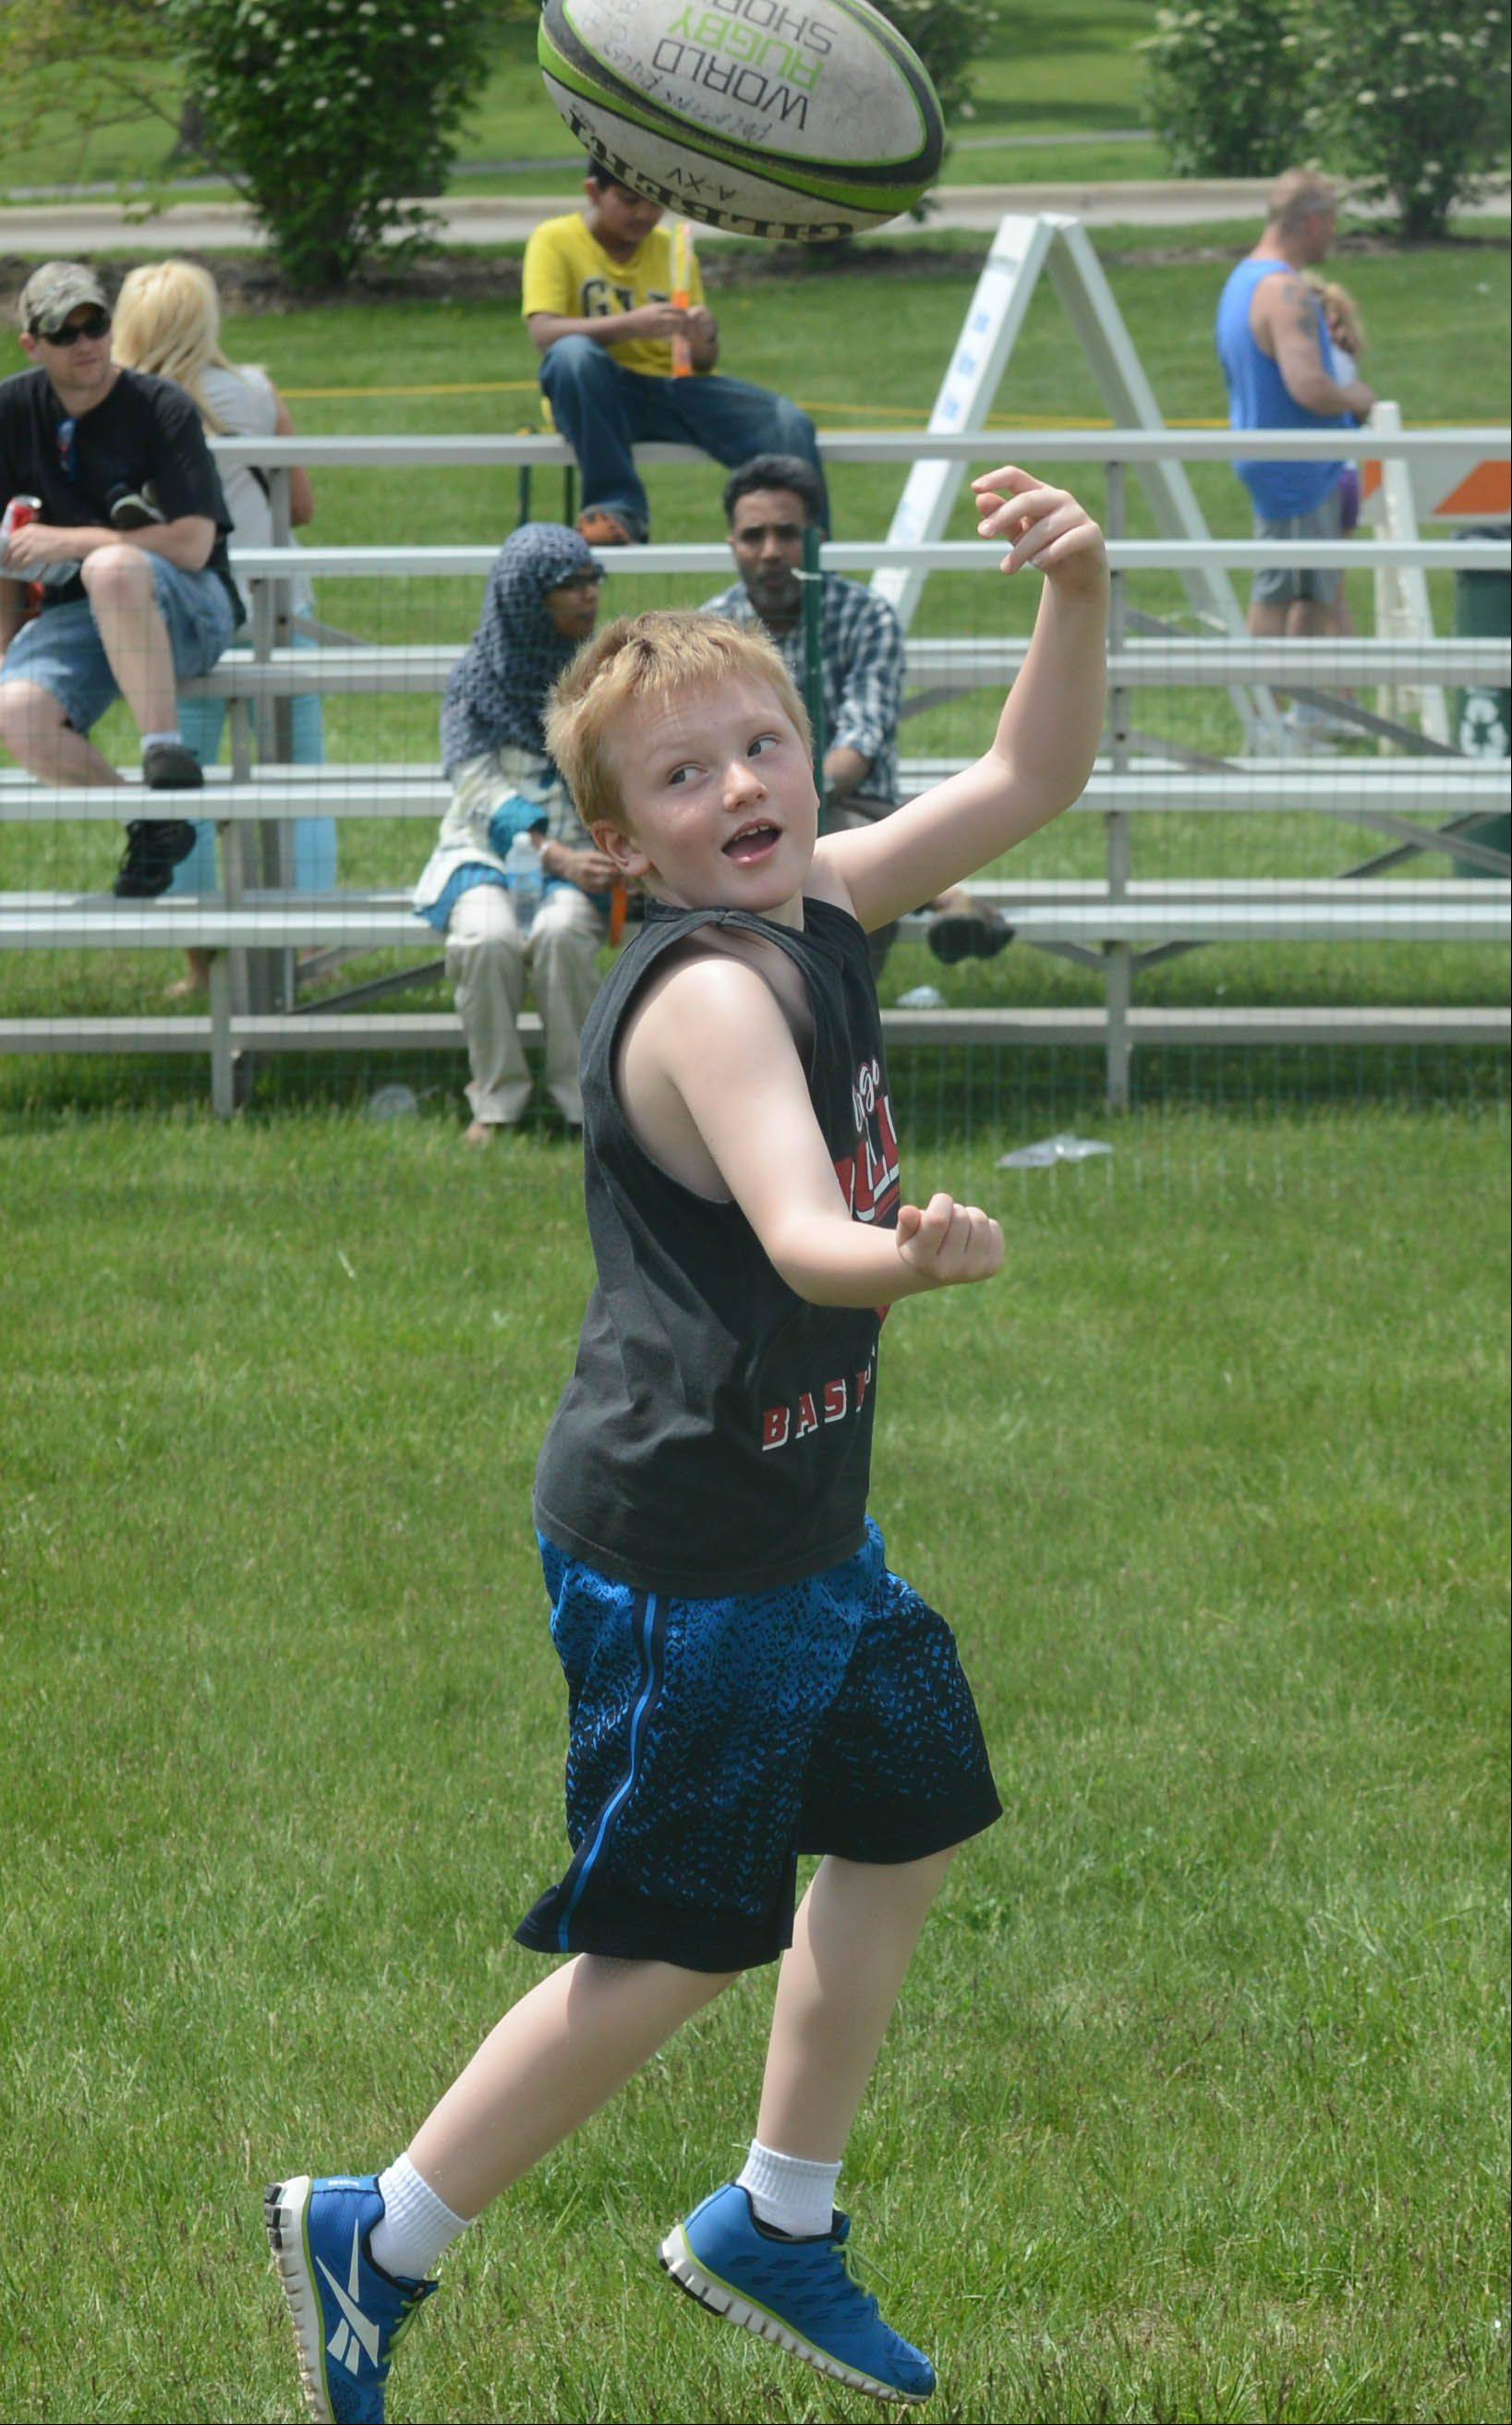 Matthew Kaczor, 7, of Palatine tosses a rugby ball during the eighth annual JustPlay! Sports & Rec Festival in Carol Stream Saturday.